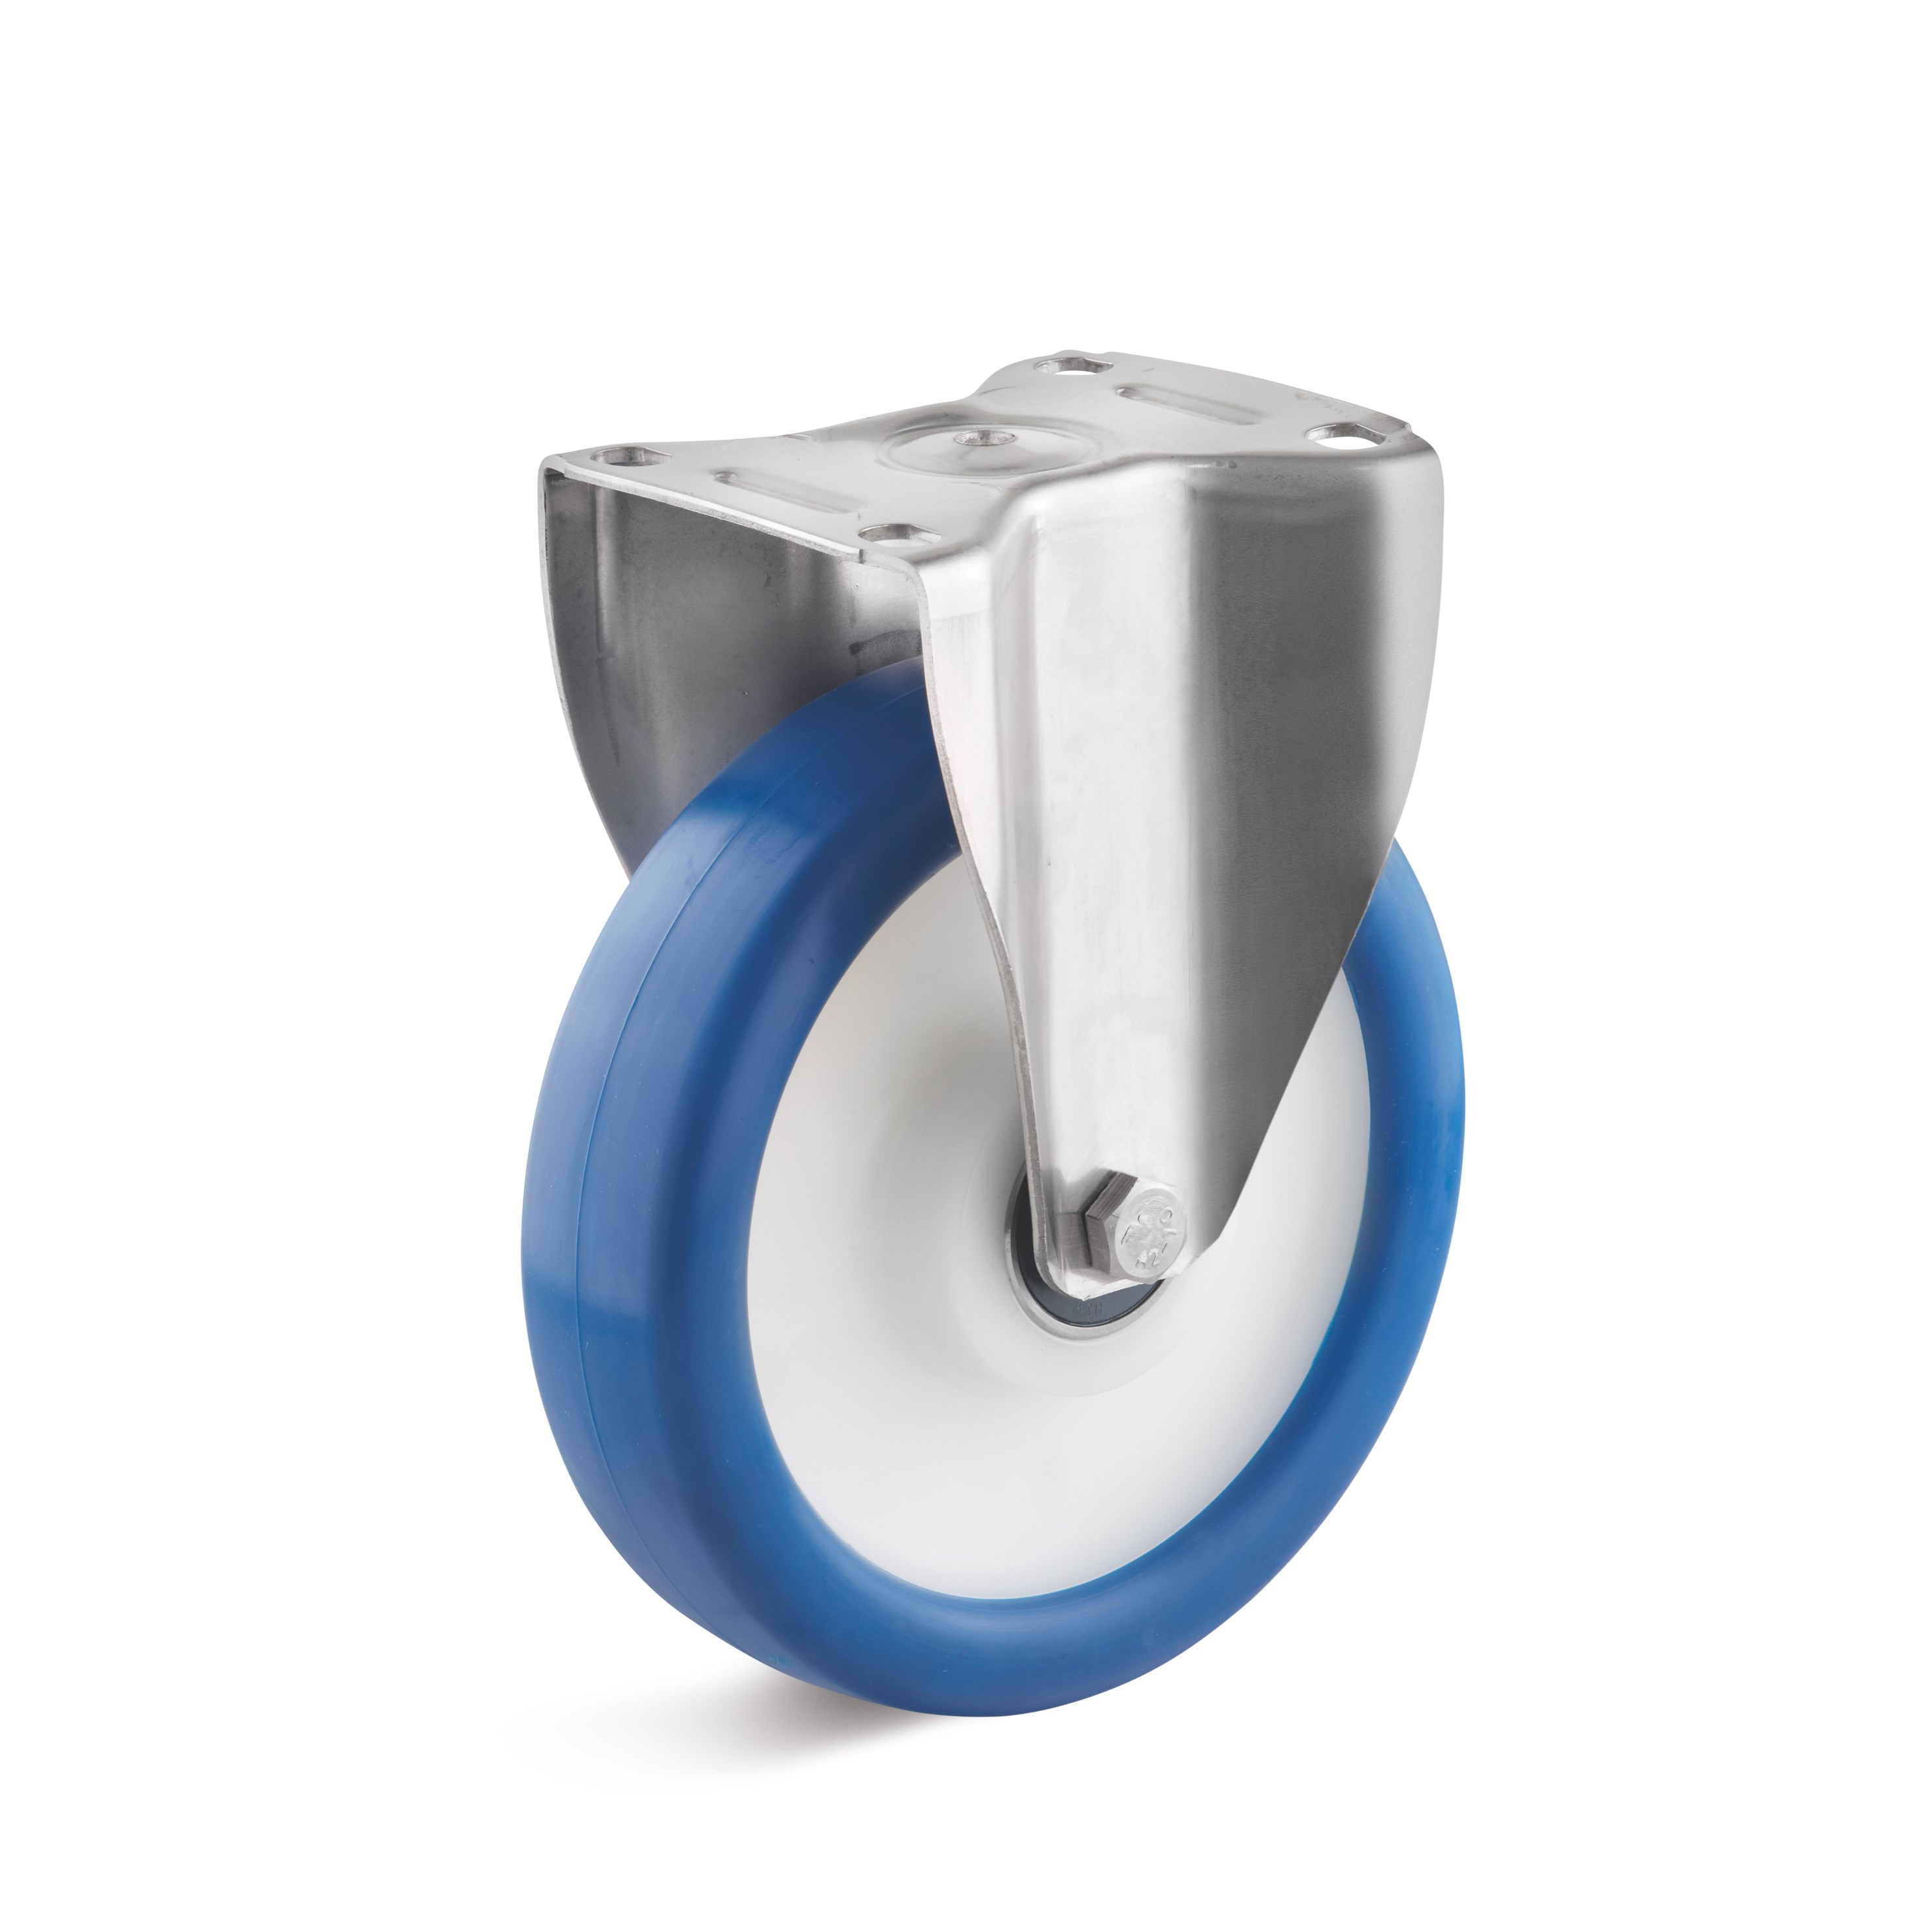 Stainless steel fixed castor with polyurethane wheel, polyamide rim